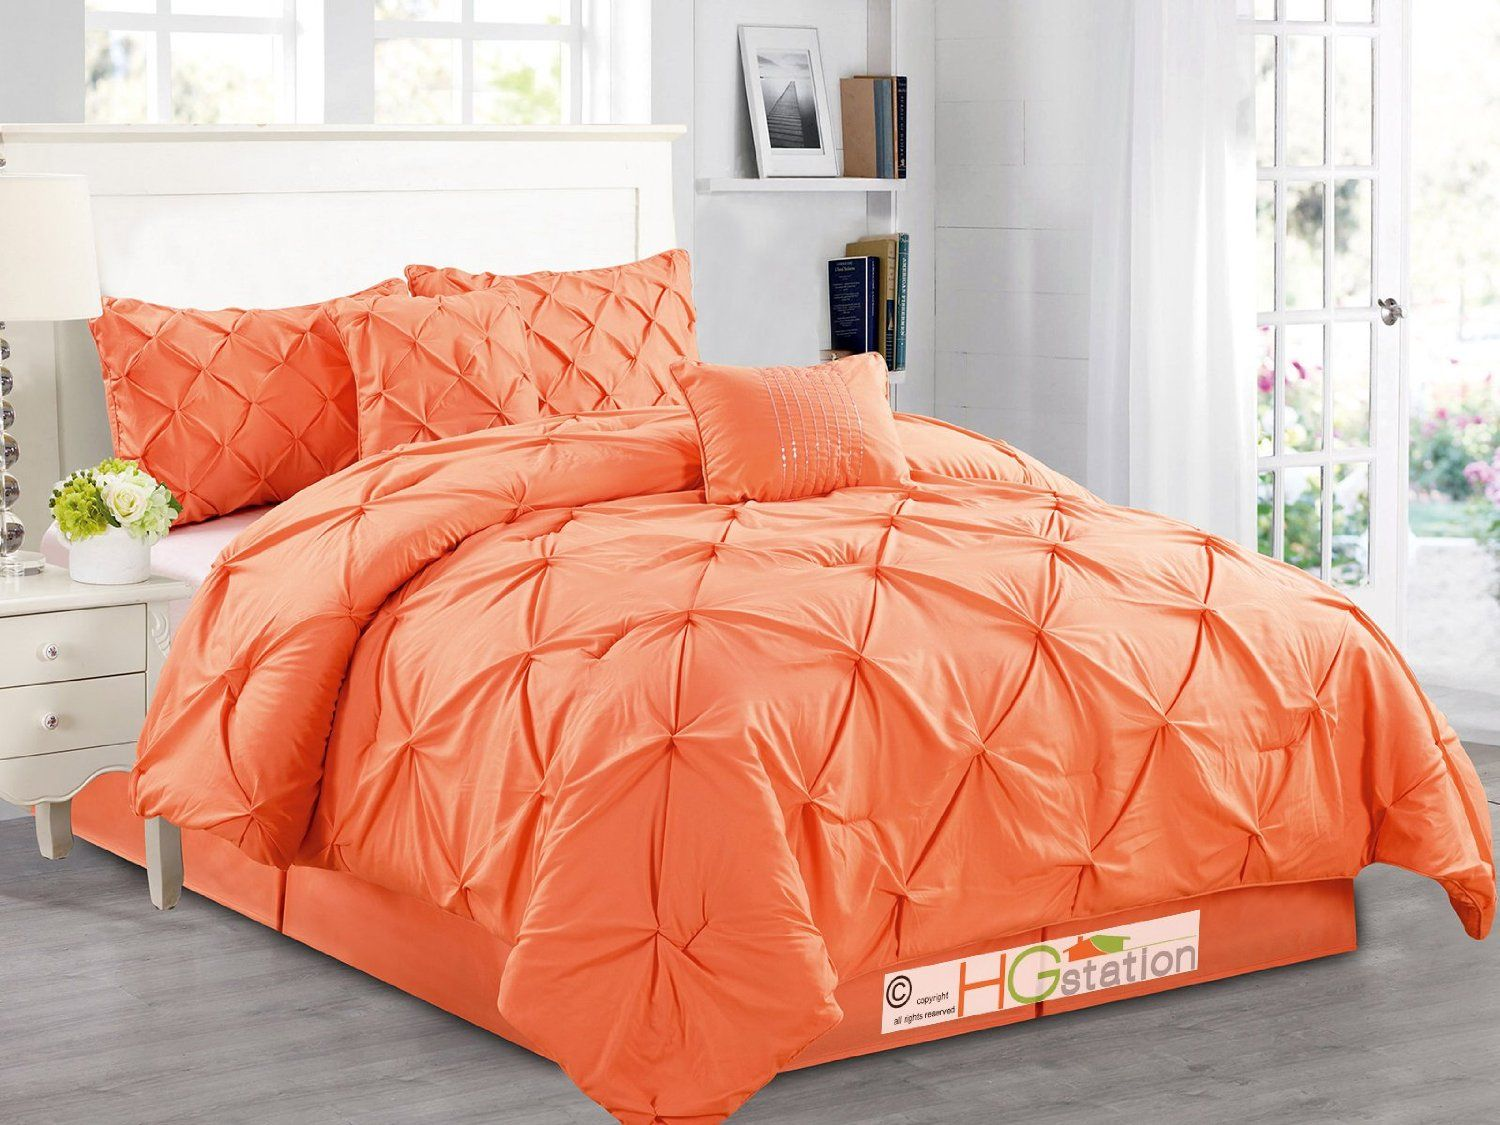 Best Pintuck Comforter Sets Sale In 2019 Furniture Decor 400 x 300